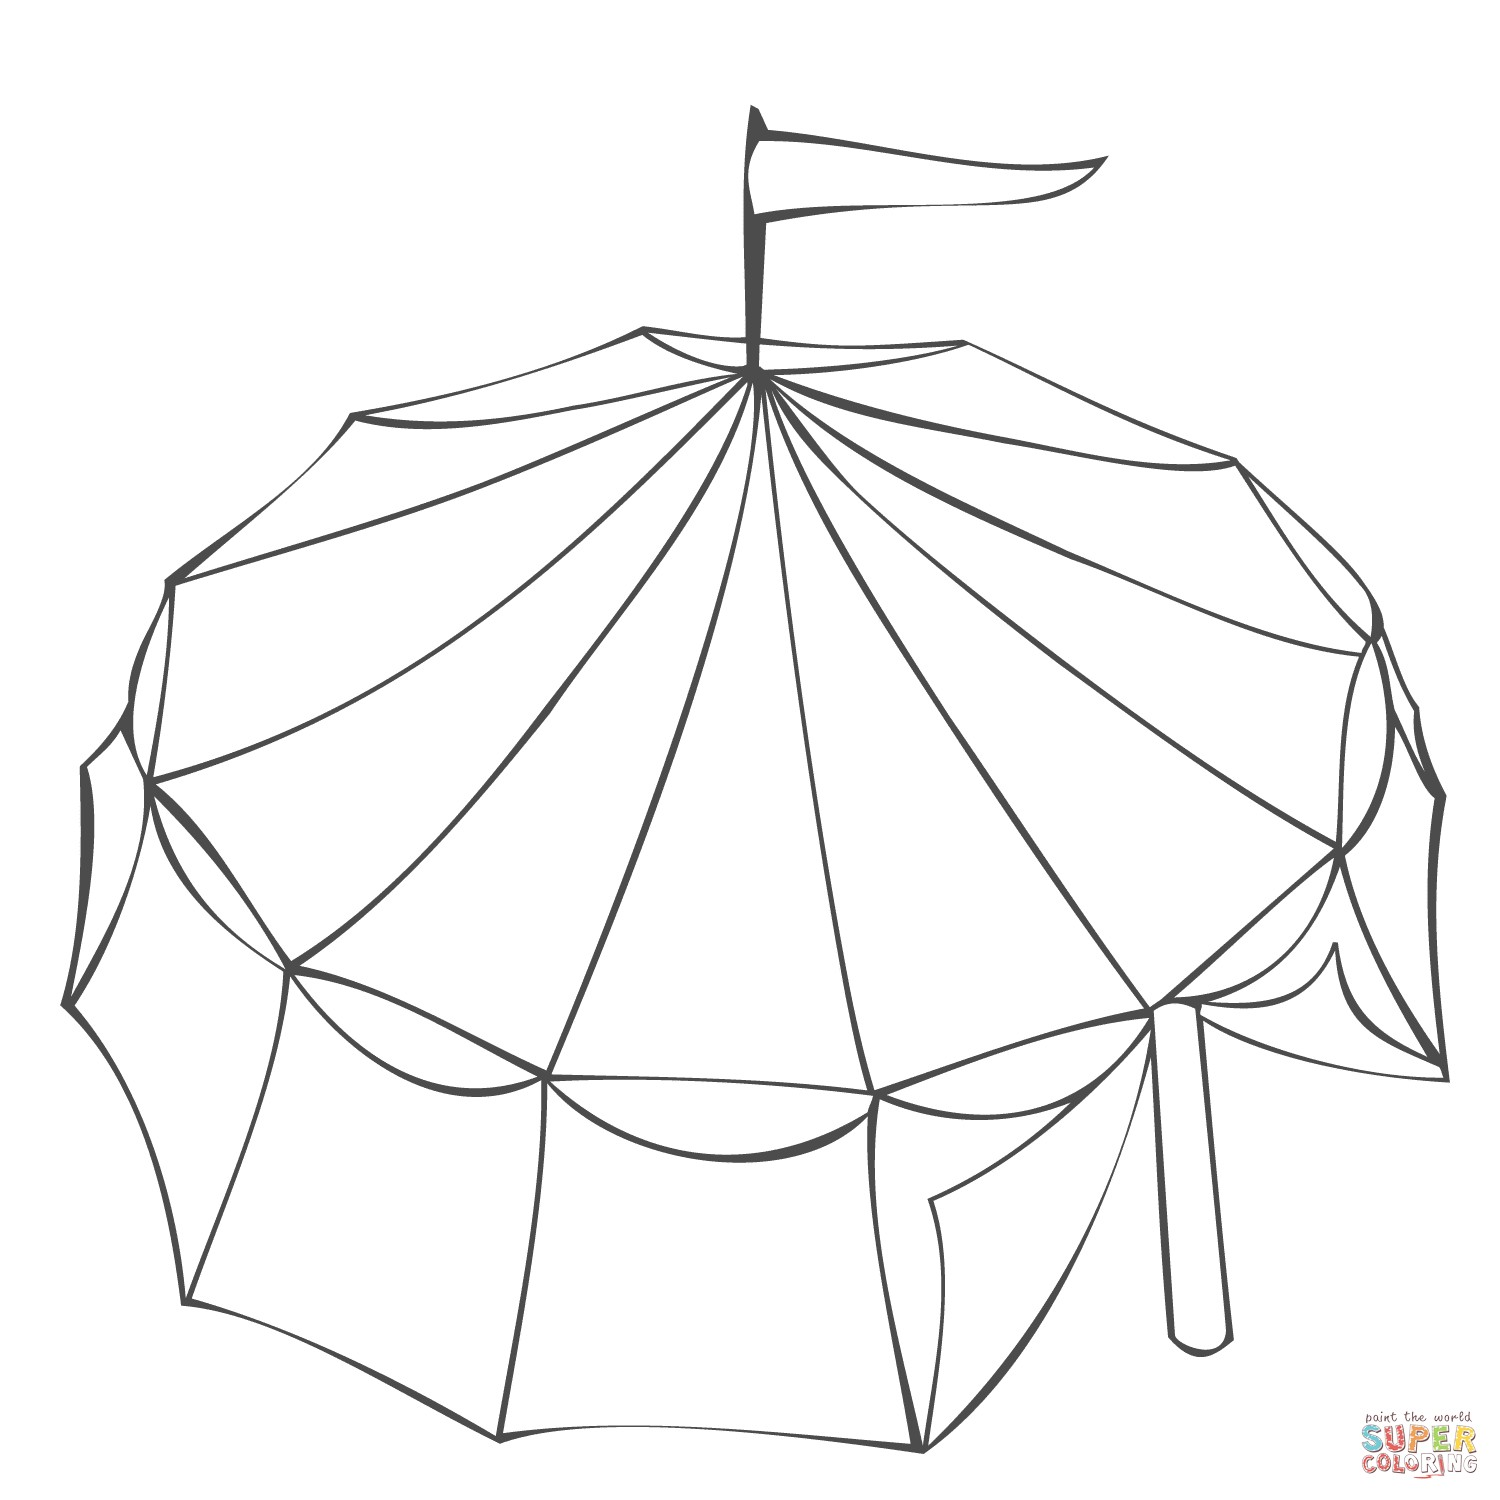 1500x1500 Tent Coloring Page Awesome Circus Tent Coloring Page Free Draw